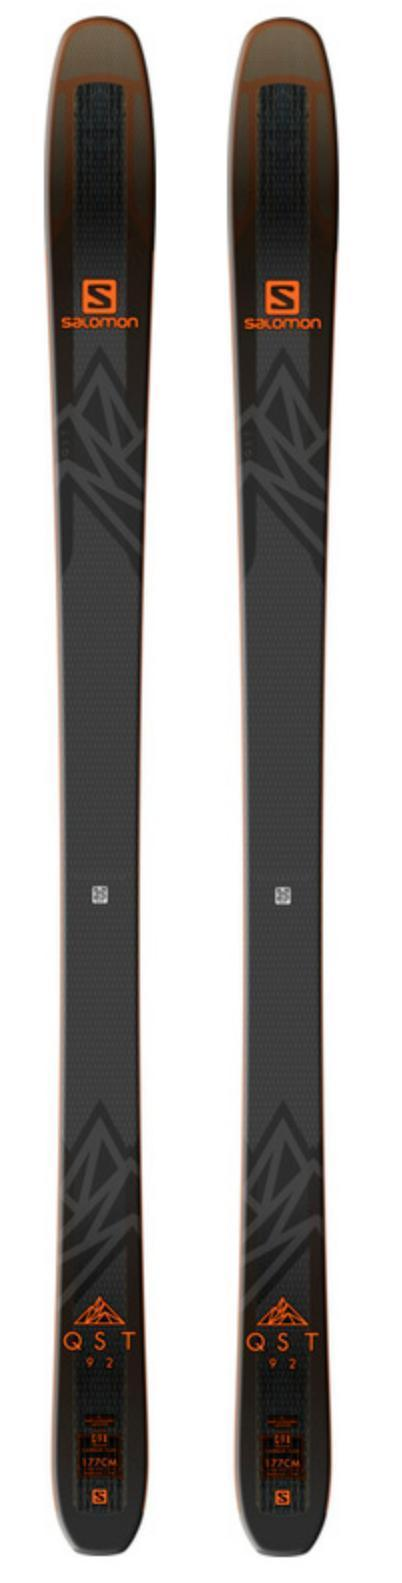 2019 Salomon QST 92 snow skis (CLEARANCE) - ProSkiGuy your Hometown Ski Shop on the web